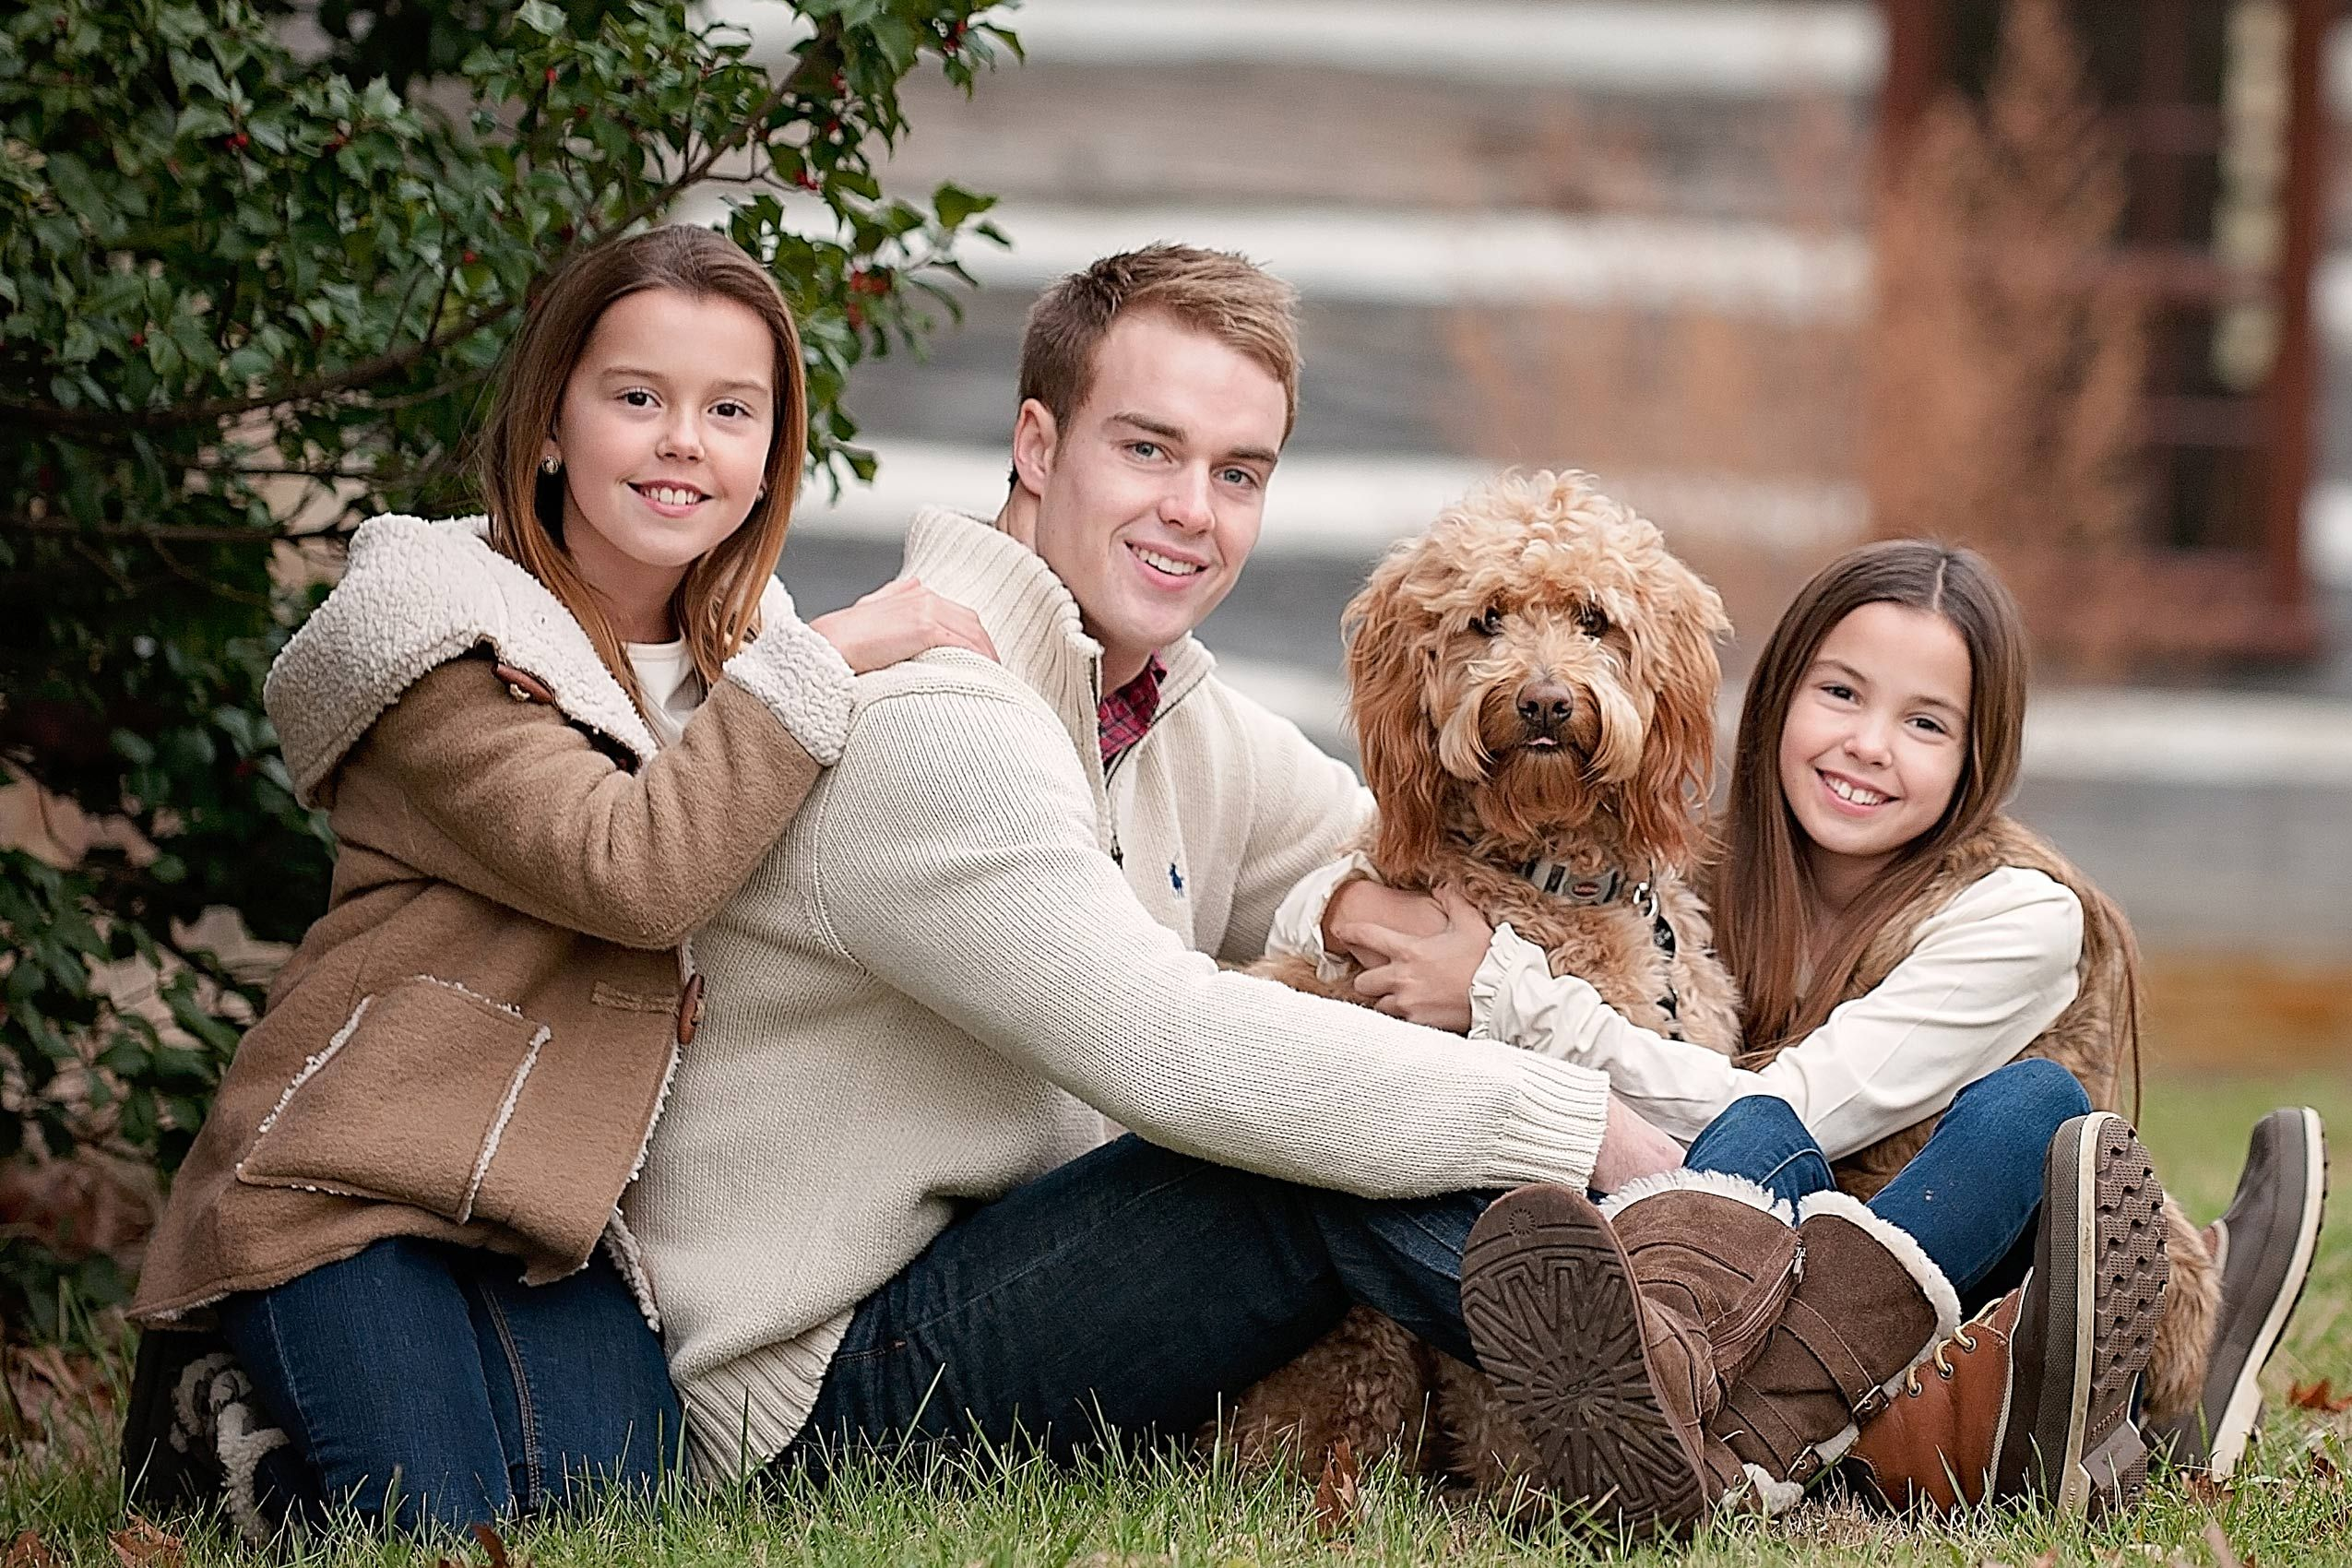 Children-with-Pets-Kentucky-Portrait.jpg